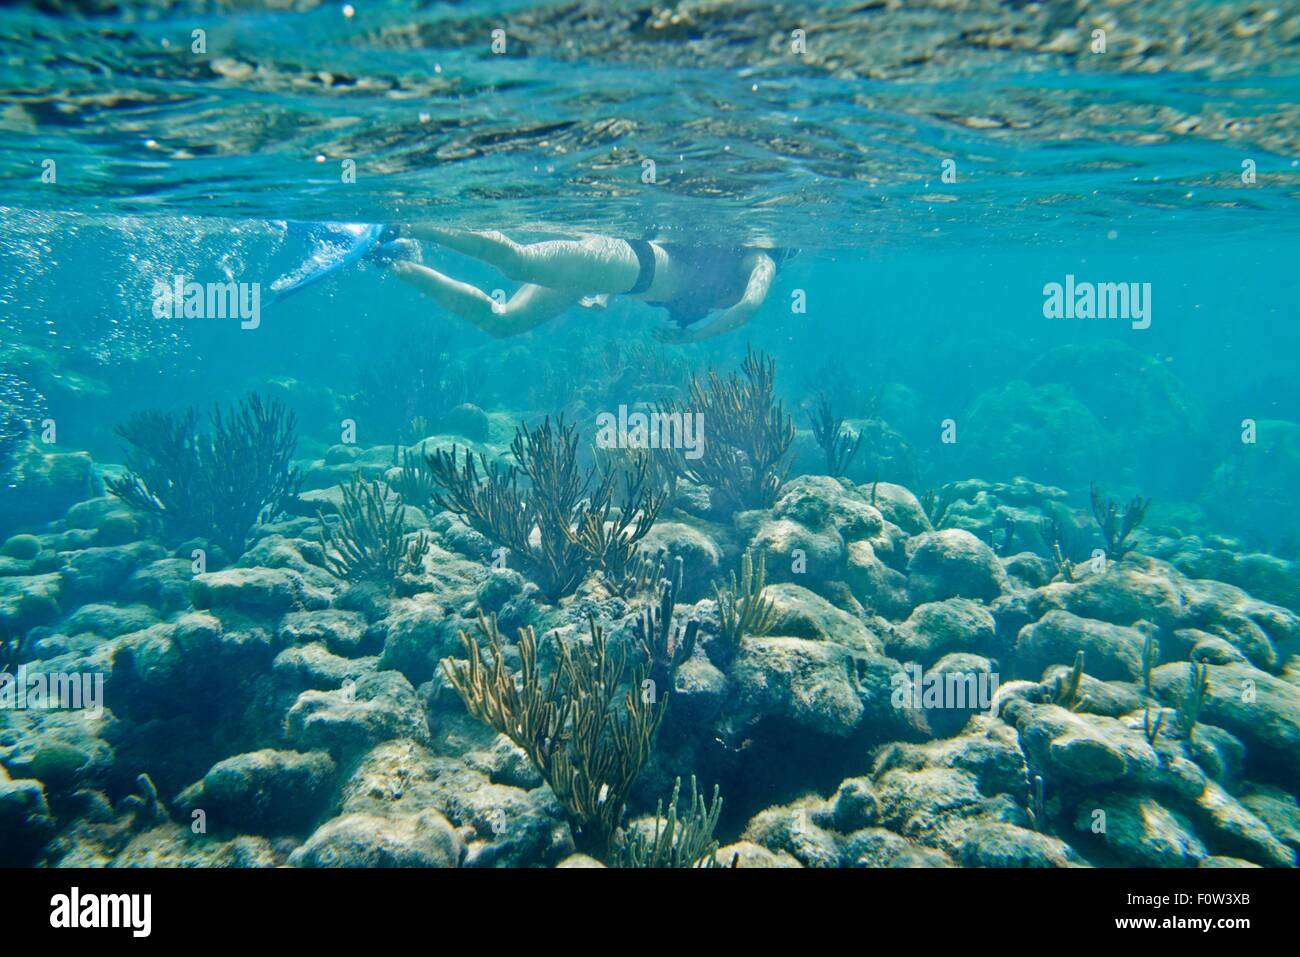 Snorkeler swimming underwater over coral - Stock Image